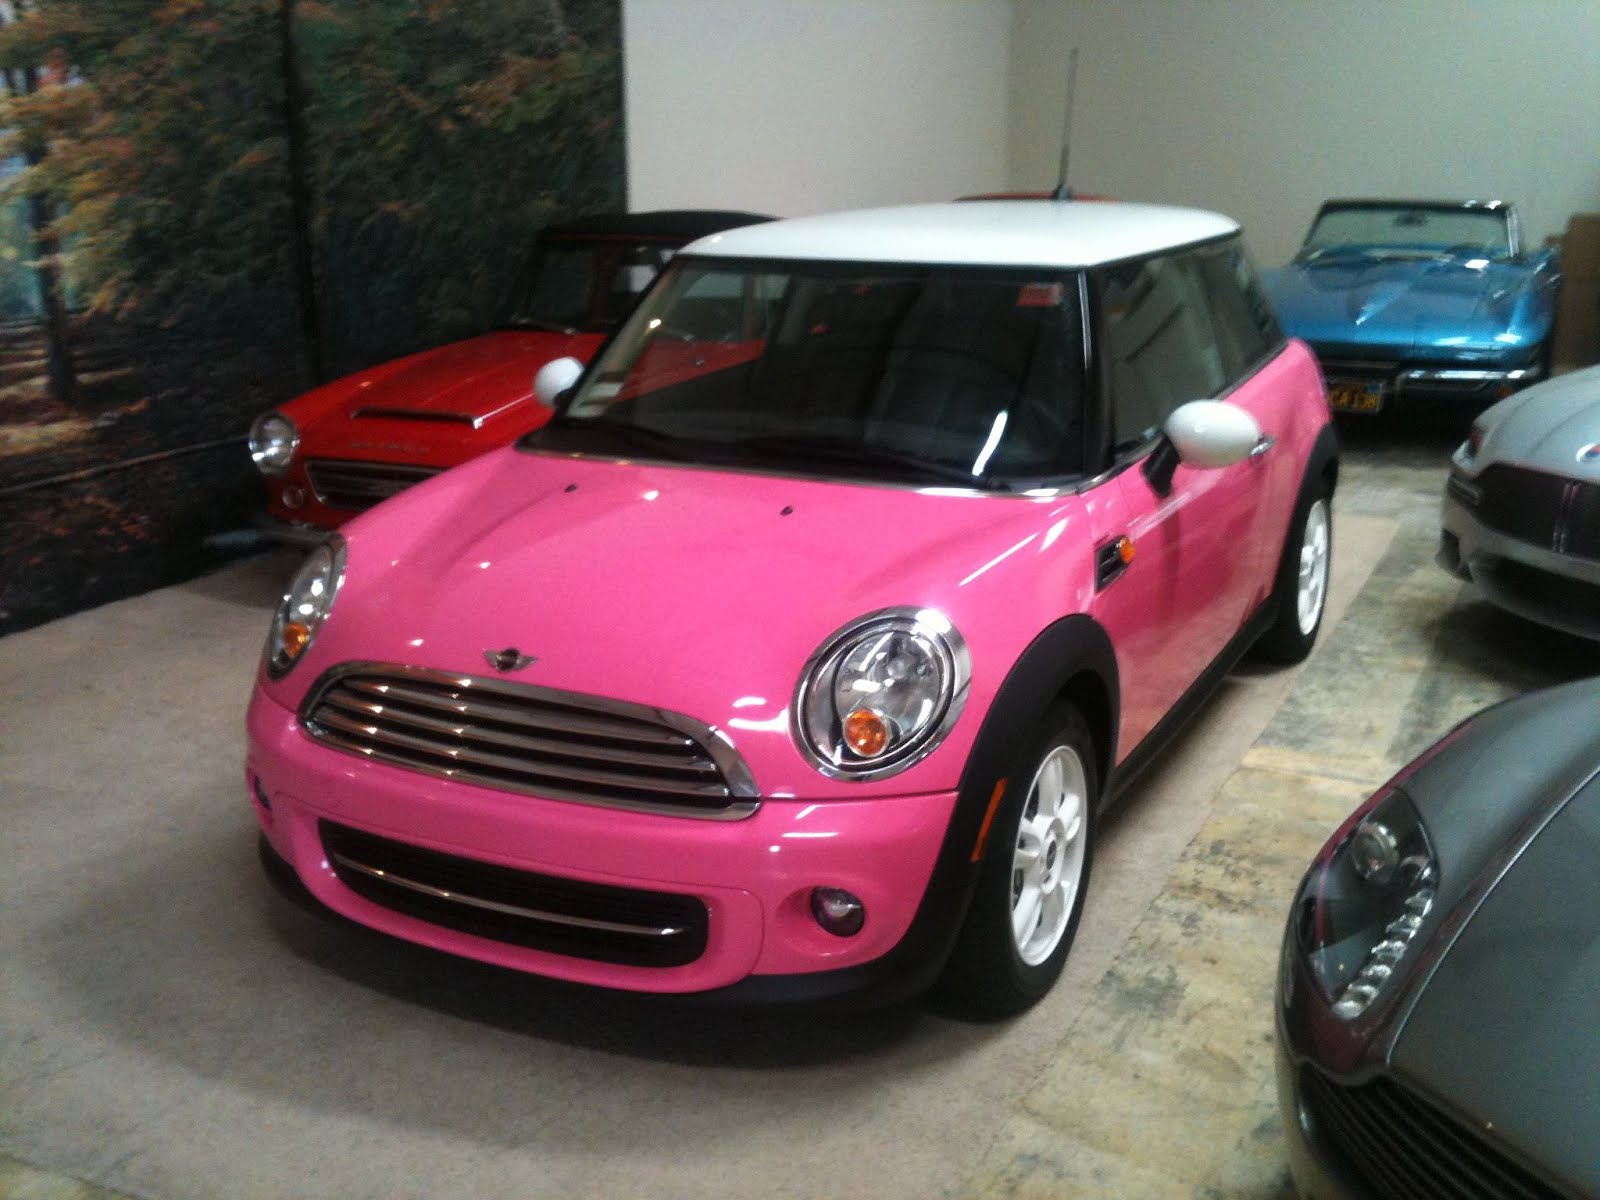 It Looks Good In Red But I Have To Say The Pink Terrific And White Wheels Are Perfect Accessory Complete Toy Car Look